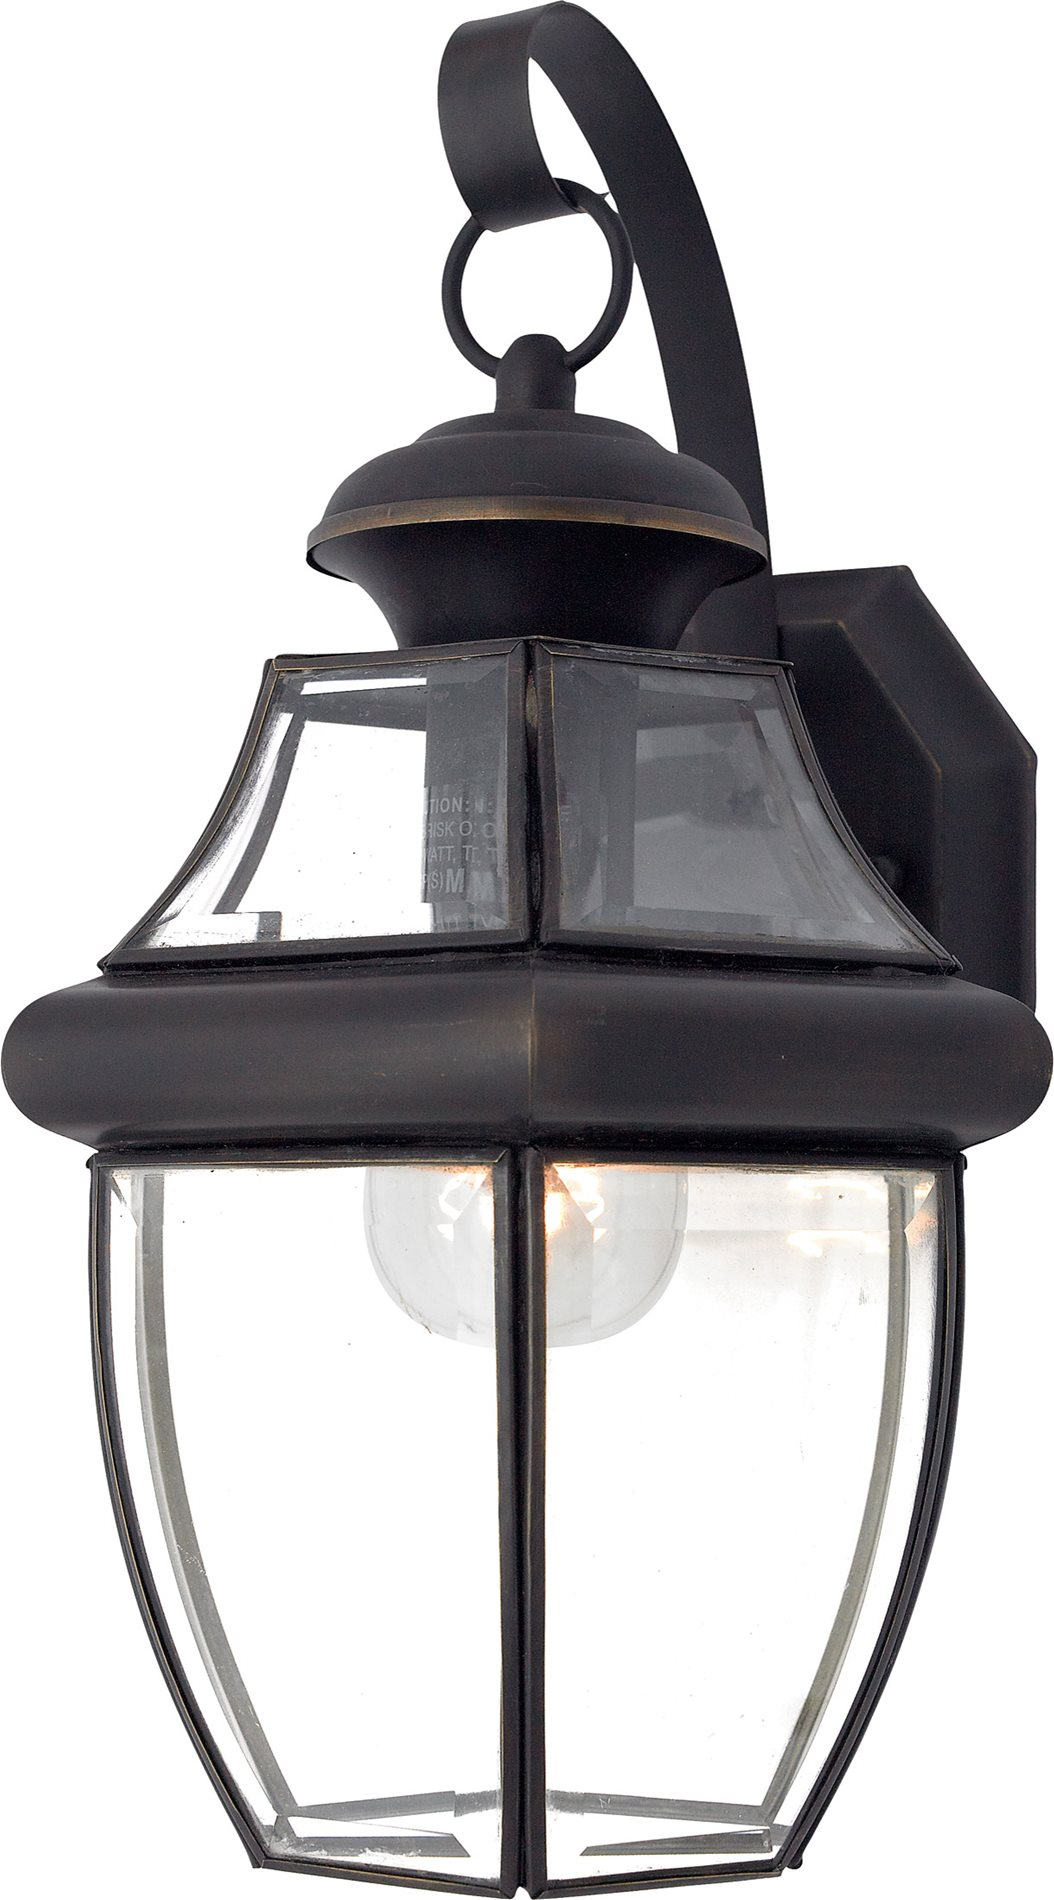 Quoizel Ny8316z Newbury Traditional Outdoor Wall Sconce Qz Ny8316z